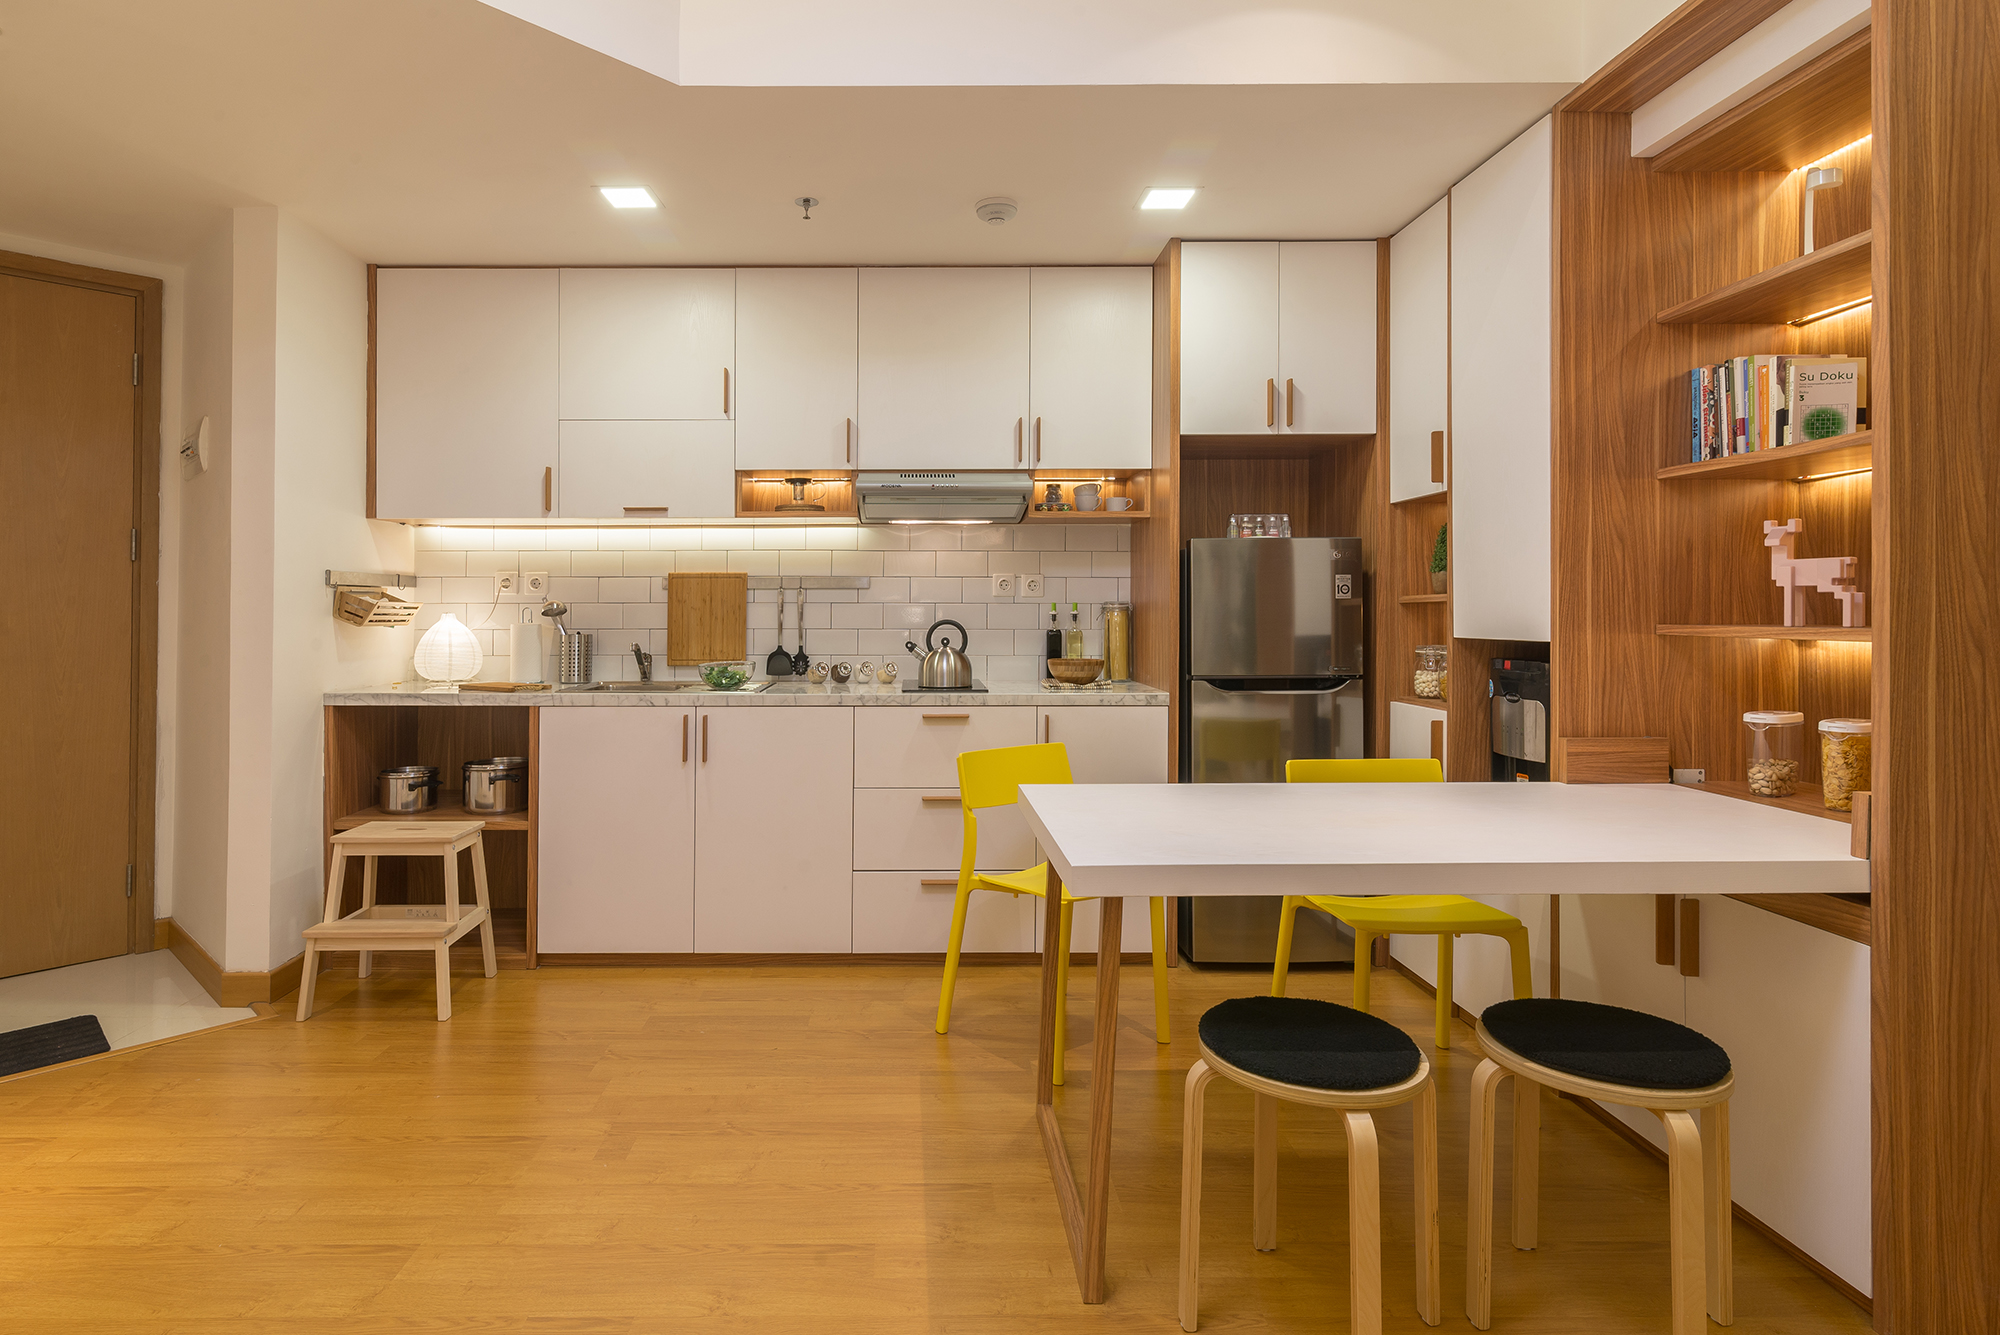 Kitchen design in Apartment